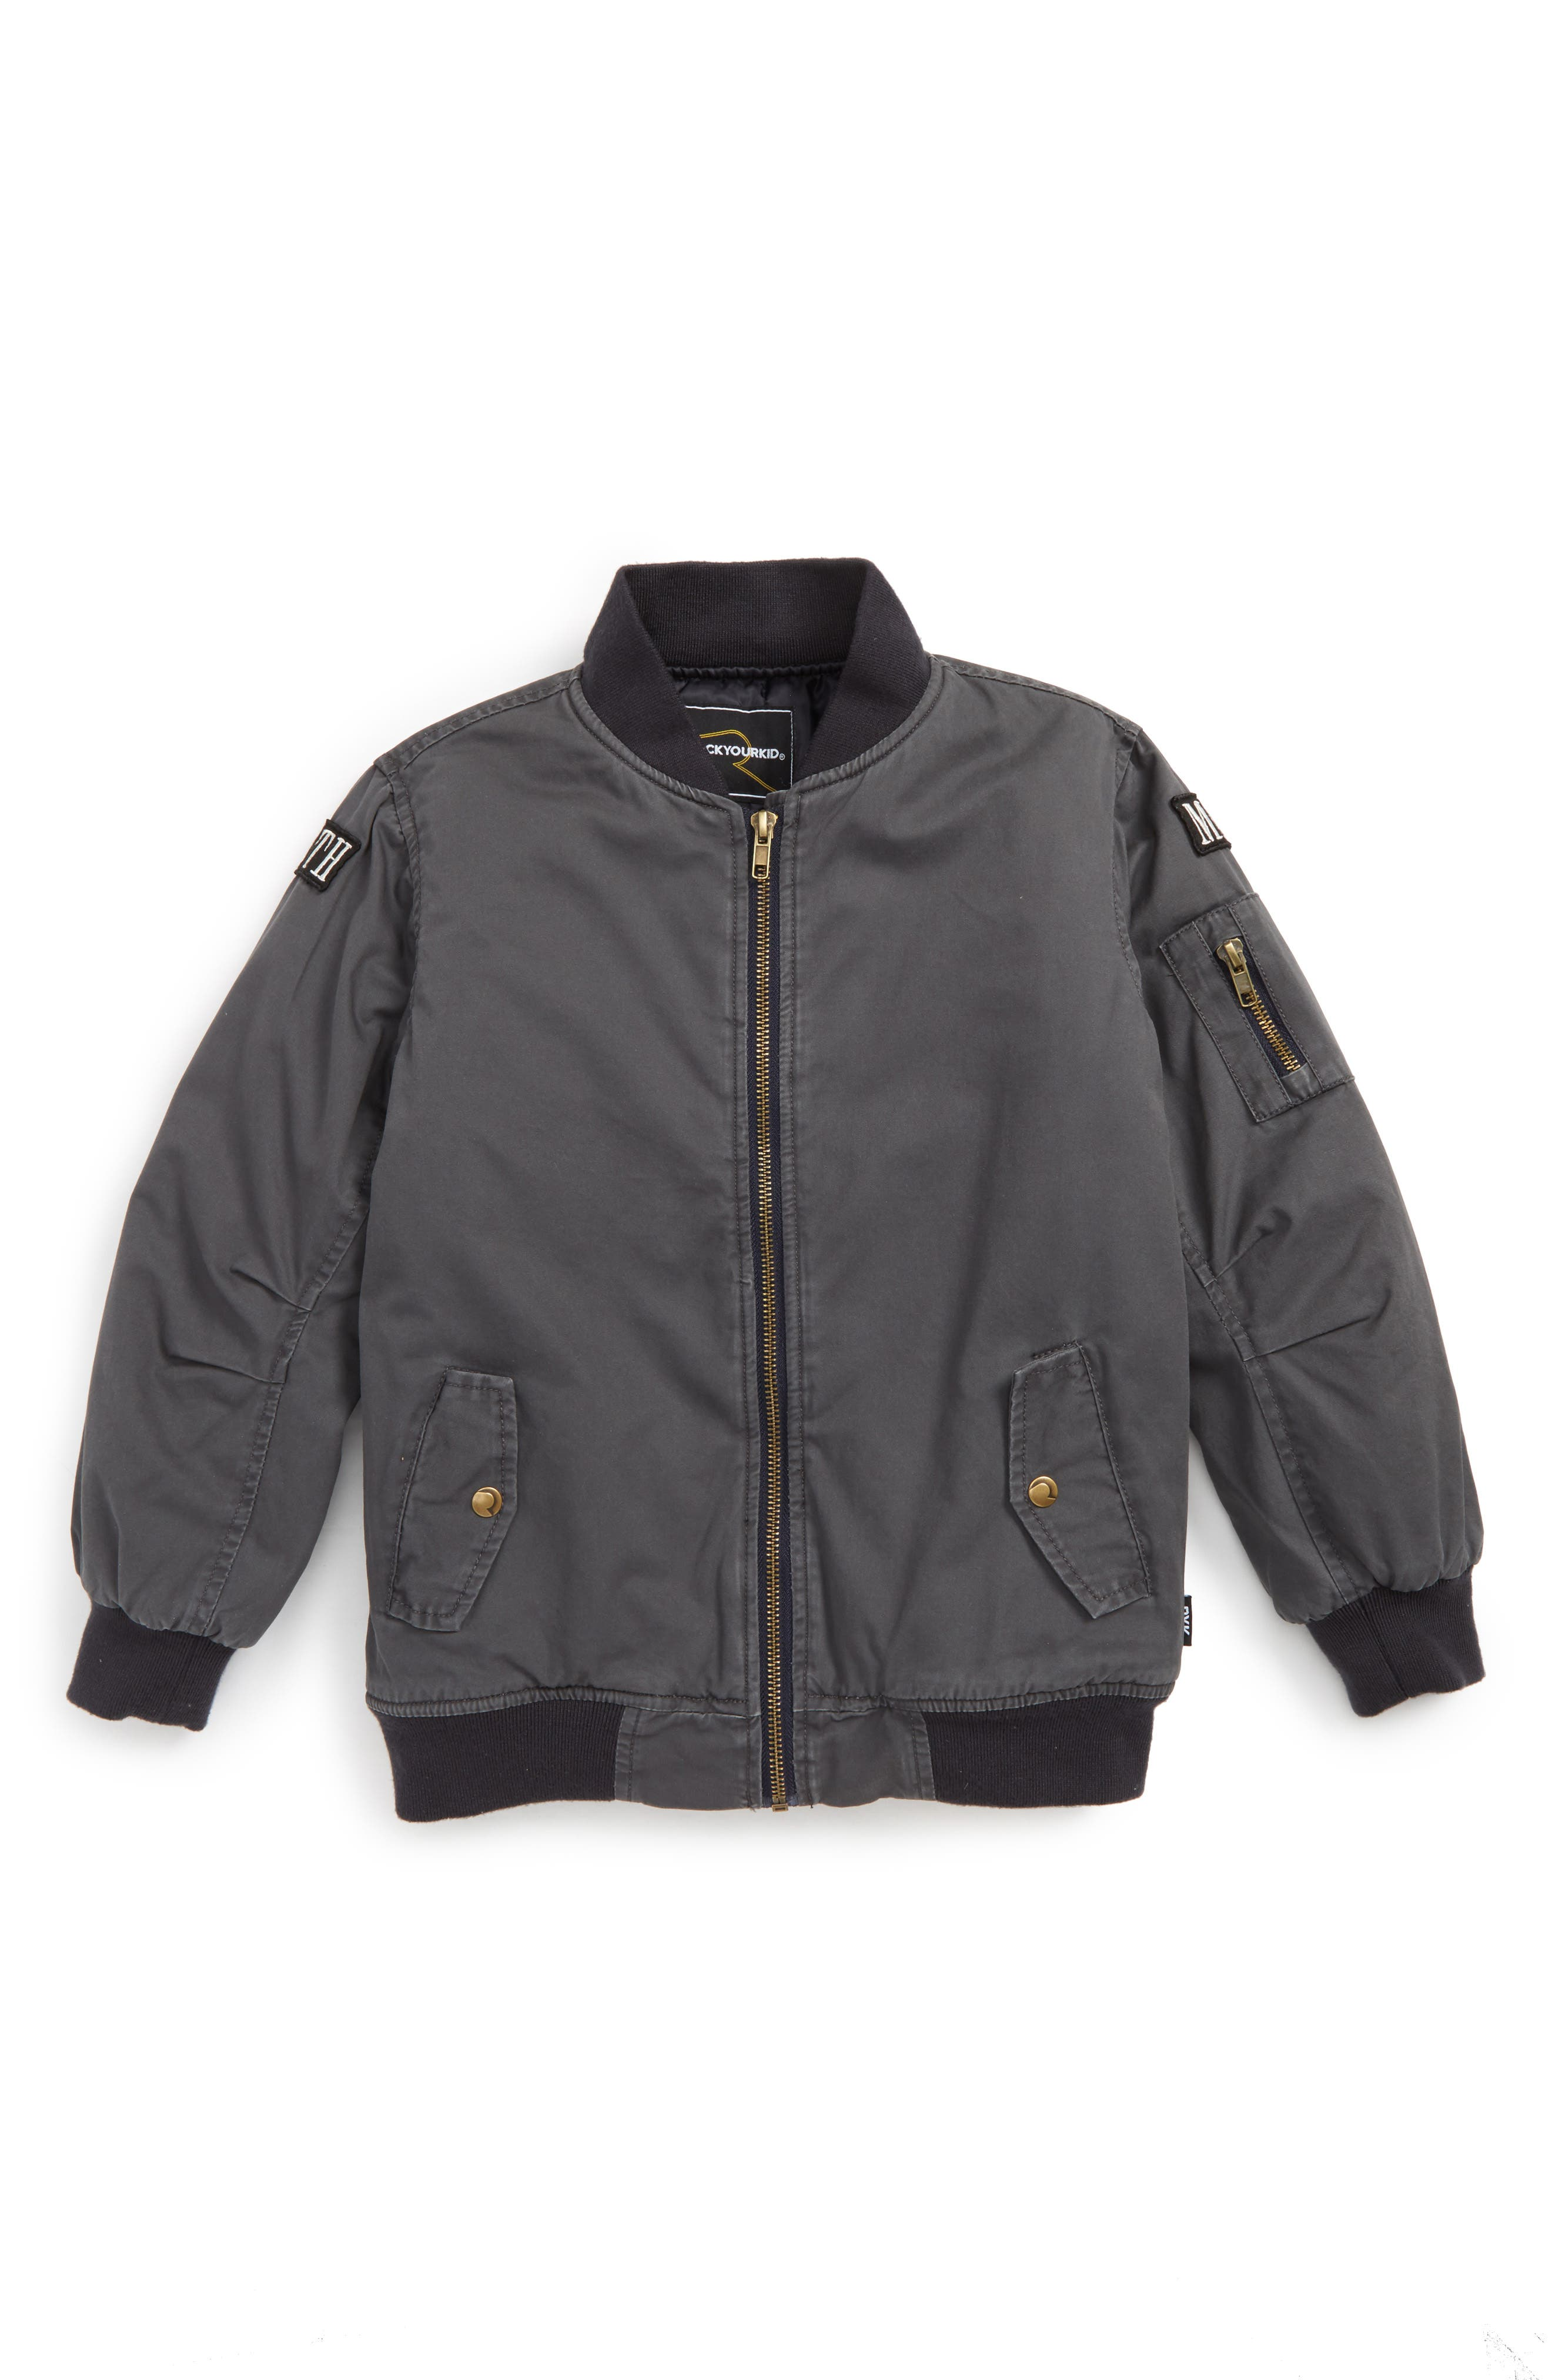 Keith Bomber Jacket,                         Main,                         color, Charcoal